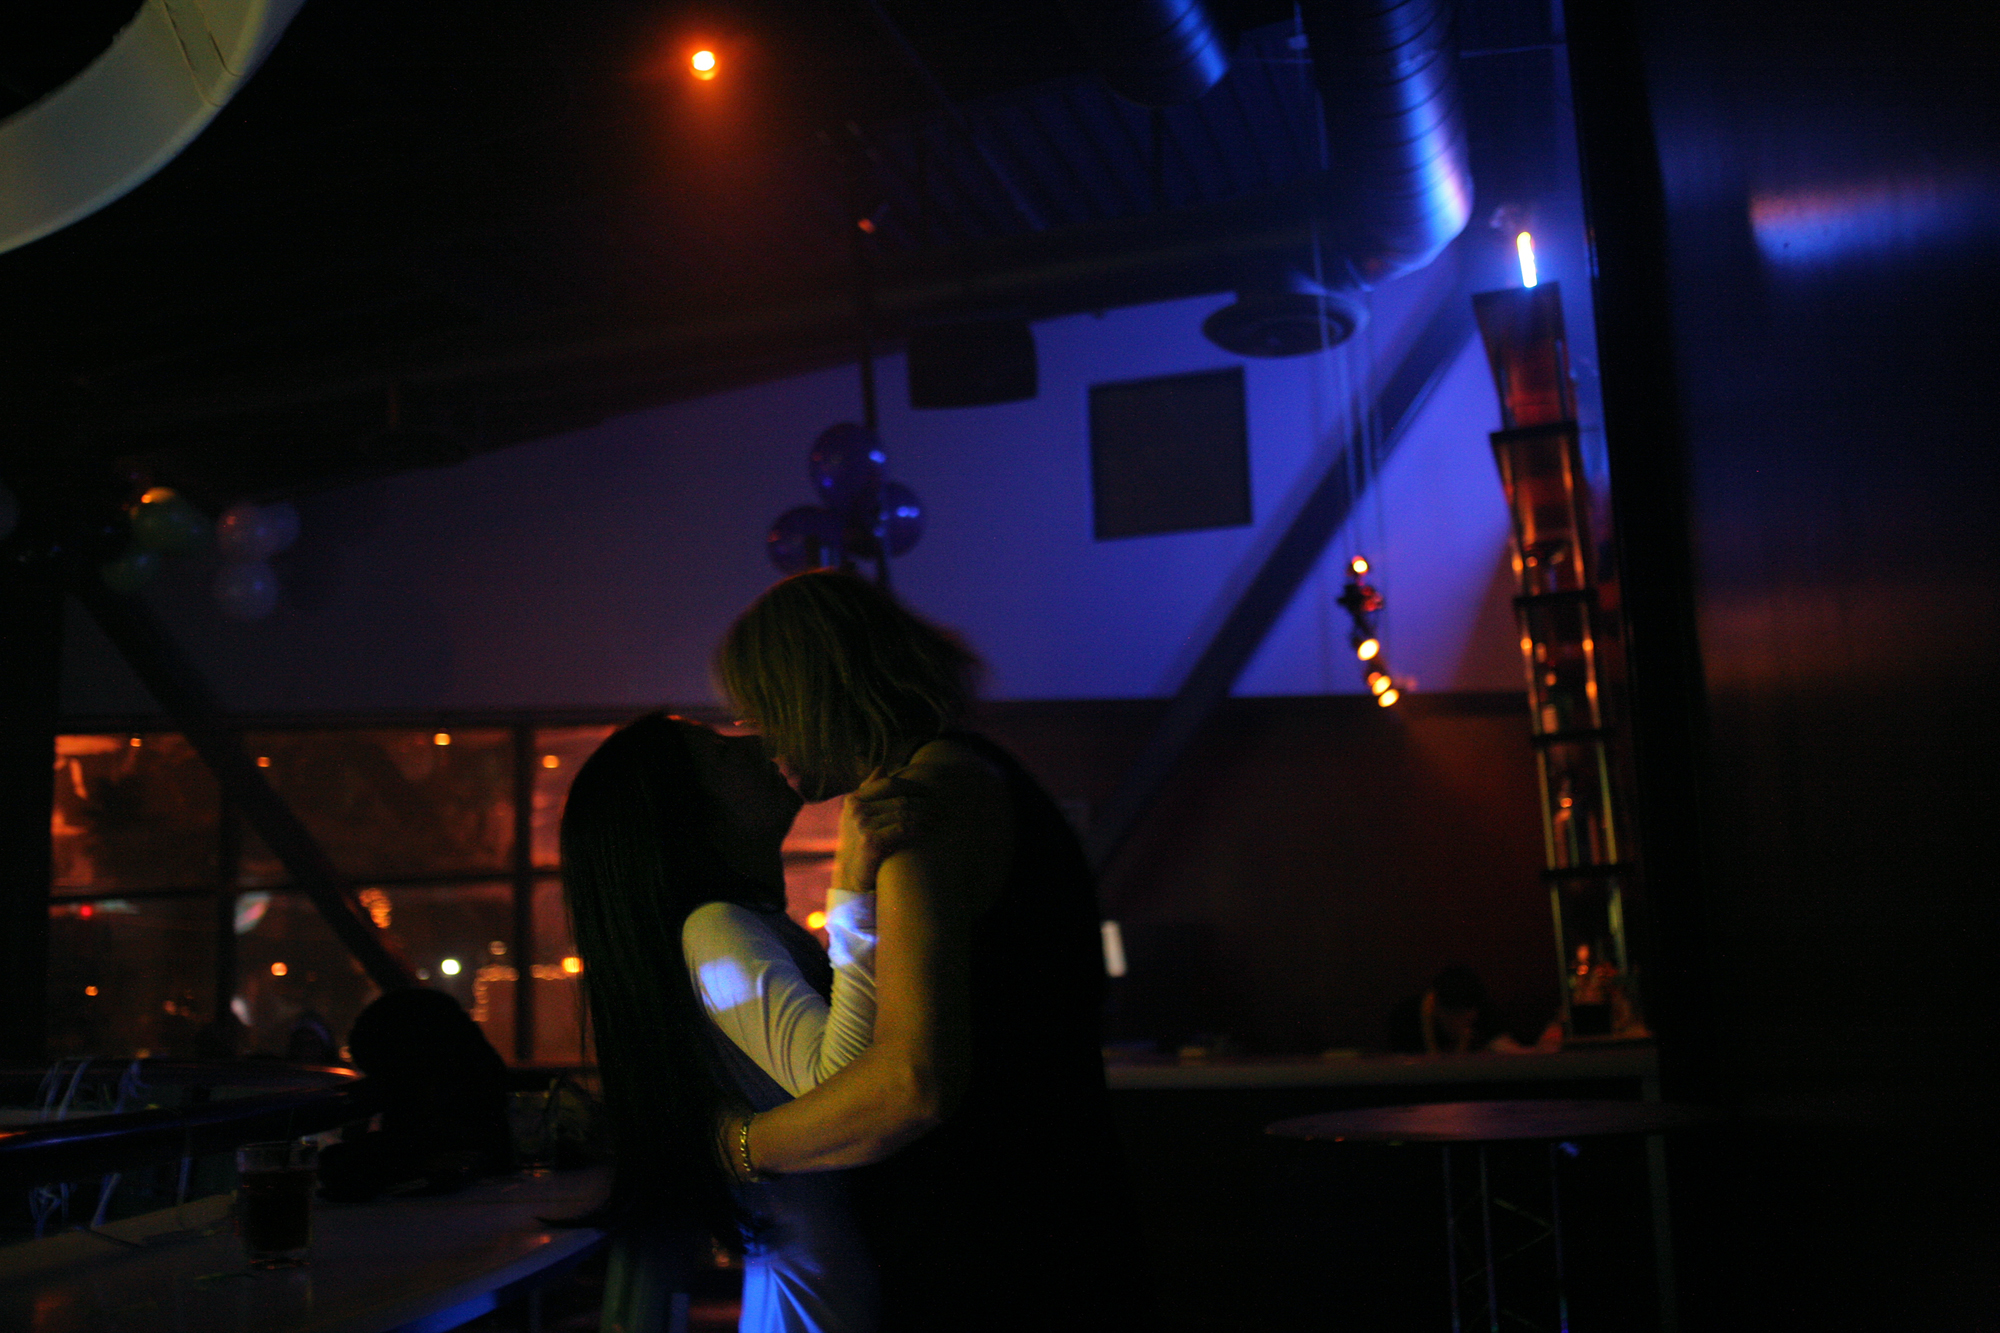 Elena celebrates New Year's with her friend Anna at Faces, a popular gay bar in midtown Sacramento. The two spent the night dancing, drinking, and sometimes kissing in the dark of the club's upper level.